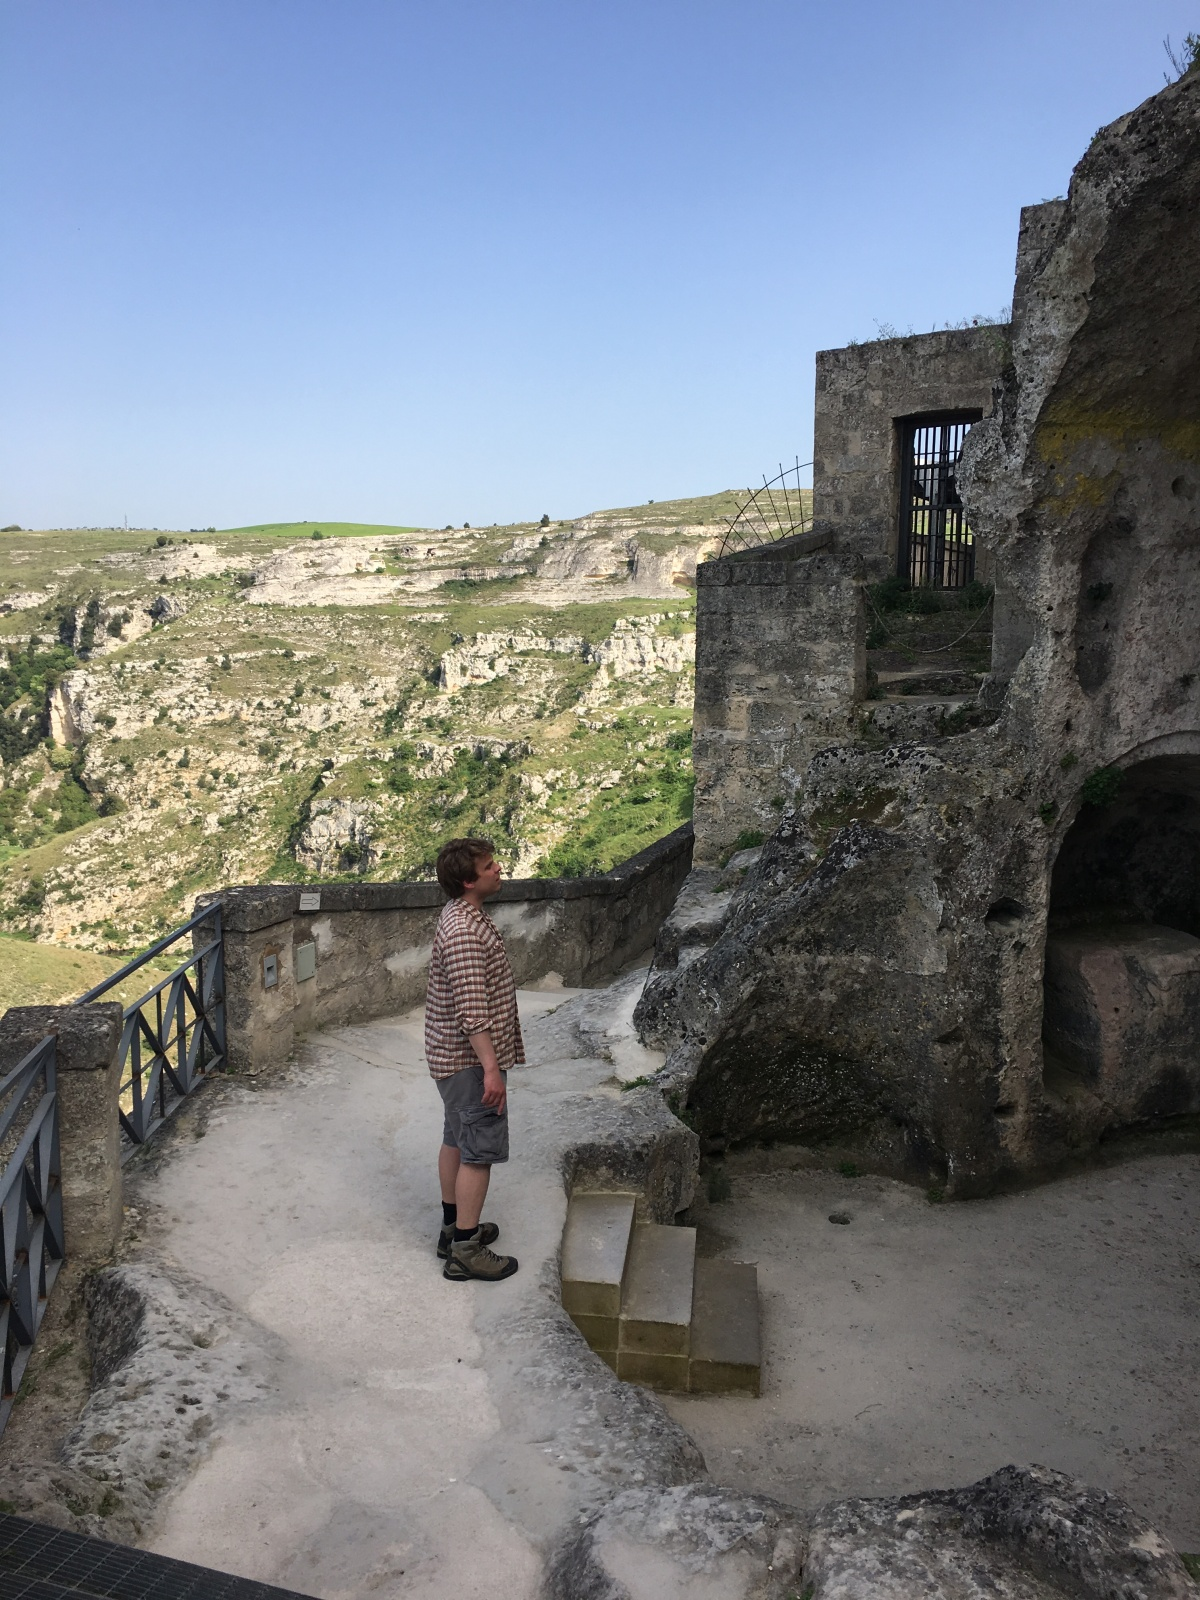 Matera: Where to stay, what to see and do in Matera. We visited on our Italian babymoon.